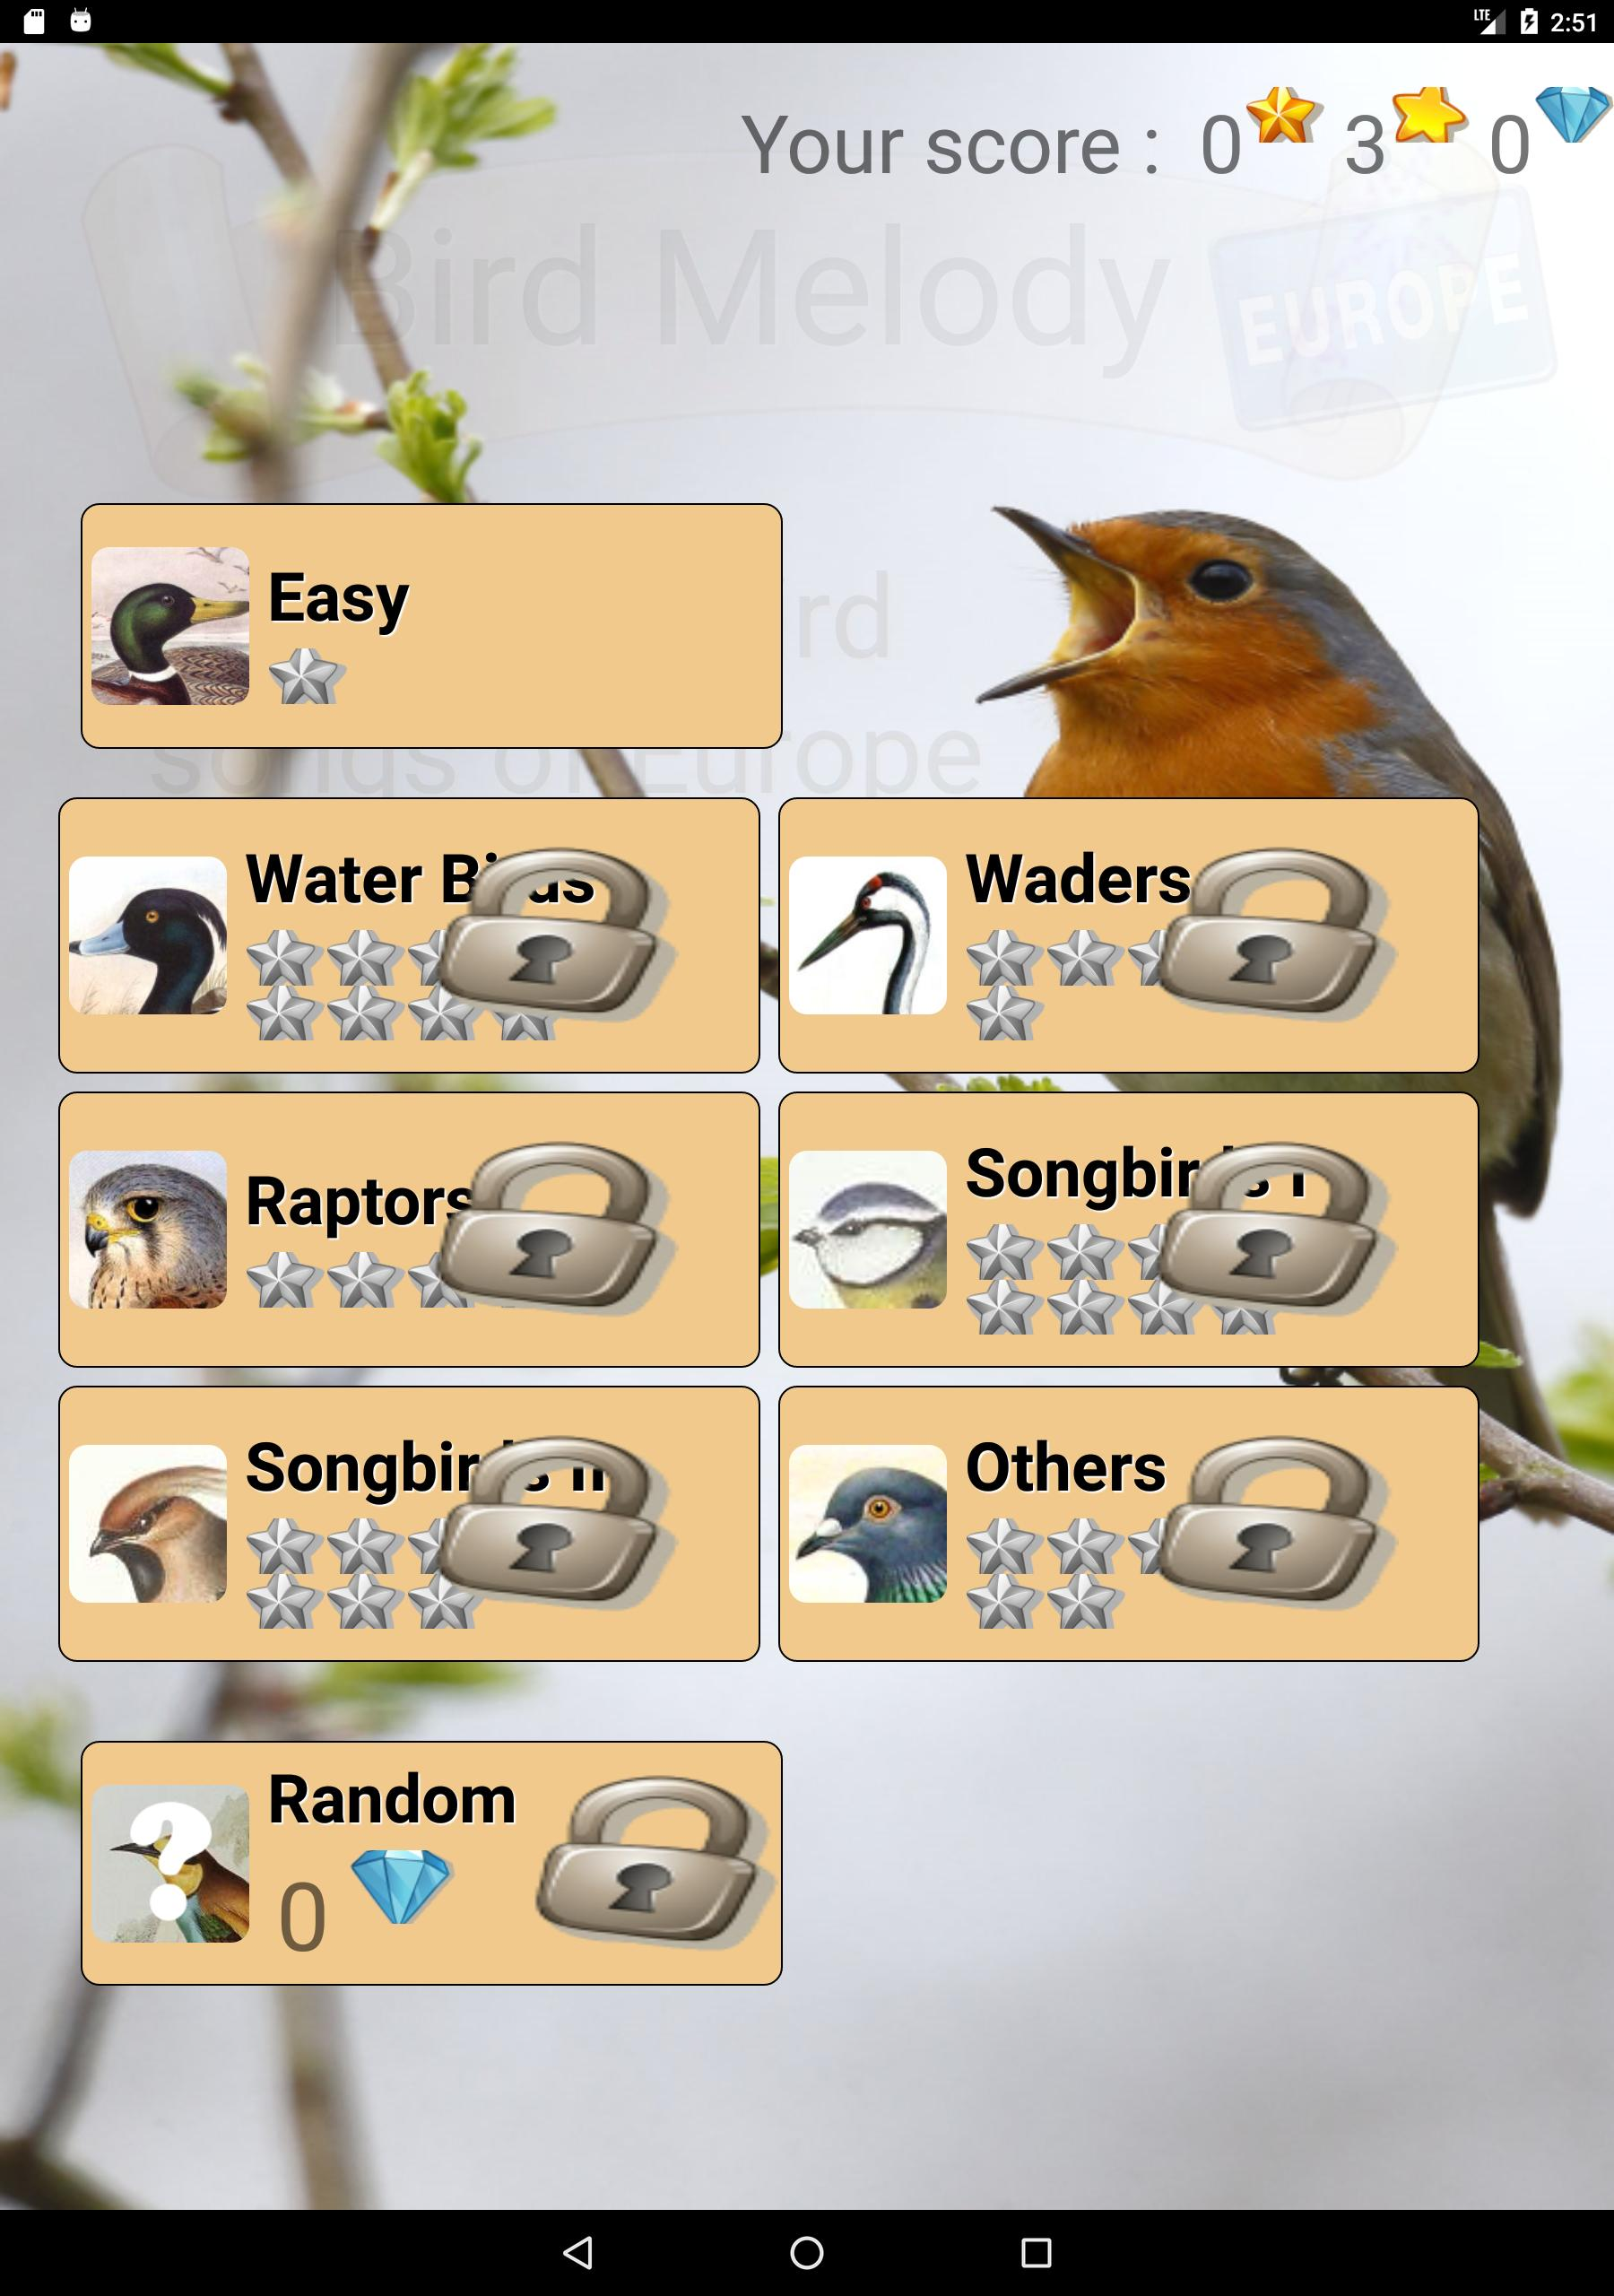 Bird Songs of Europe- Quiz & Guide for Android - APK Download